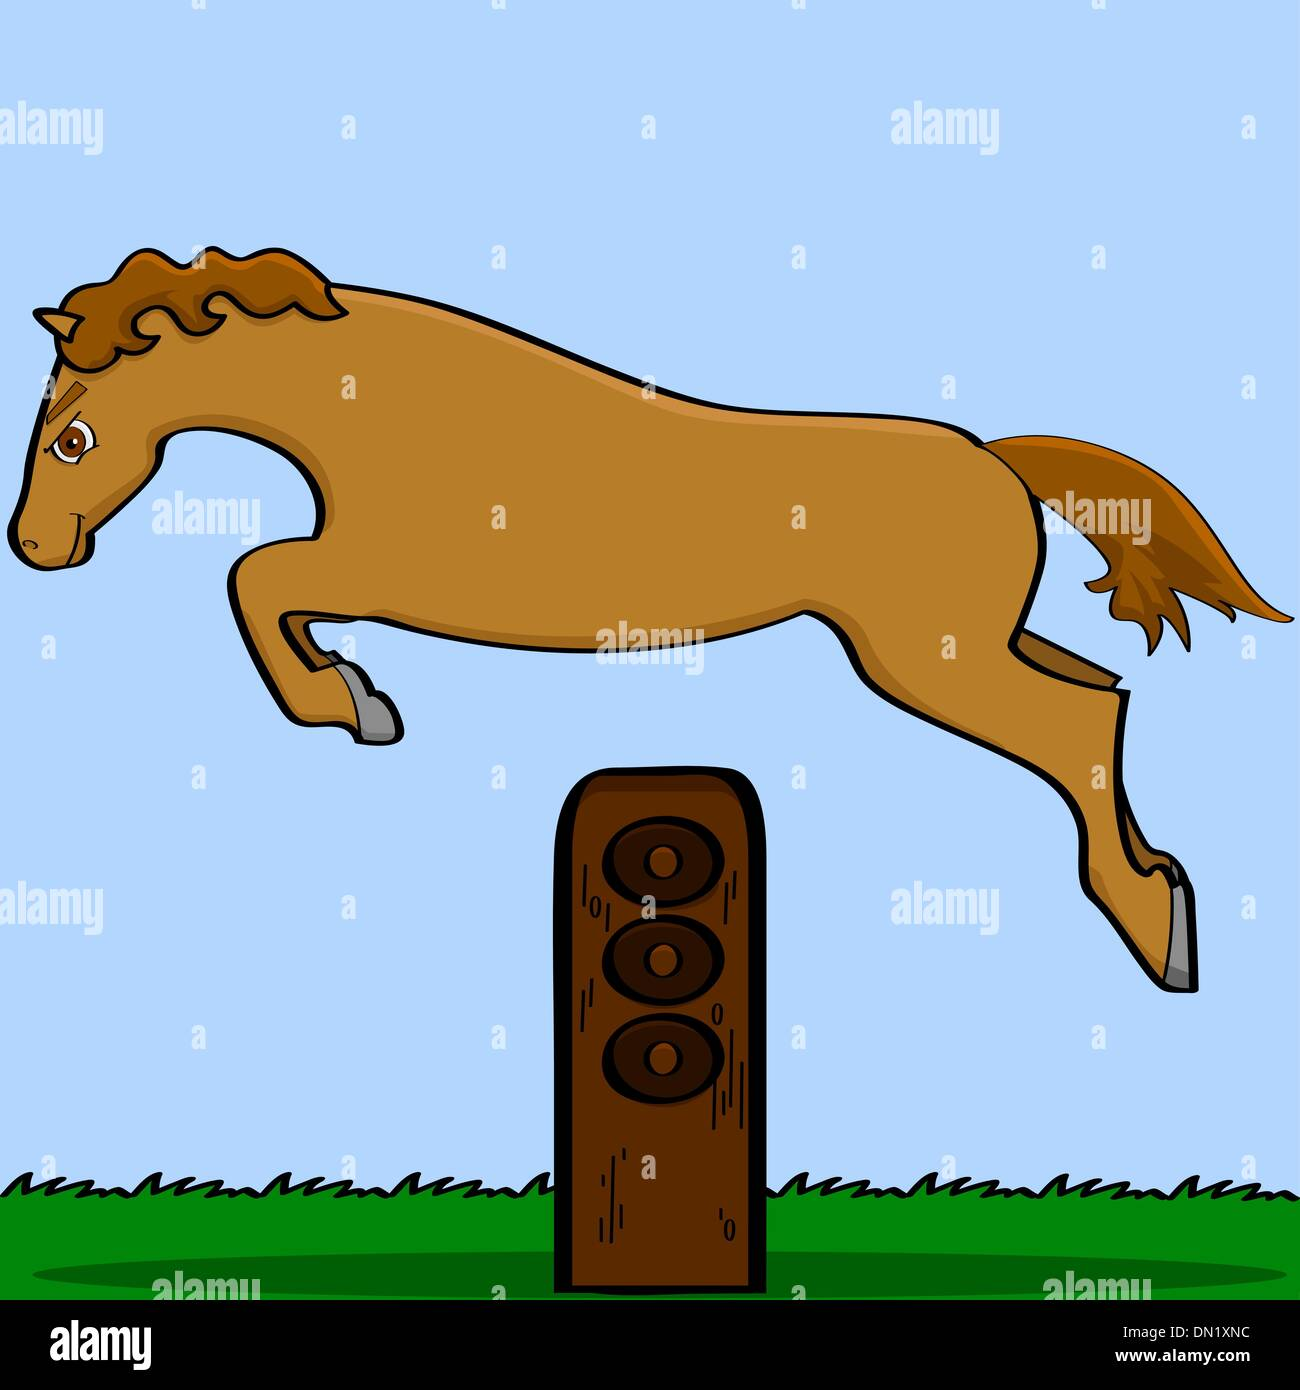 Cartoon horse jumping over an obstacle - Stock Vector